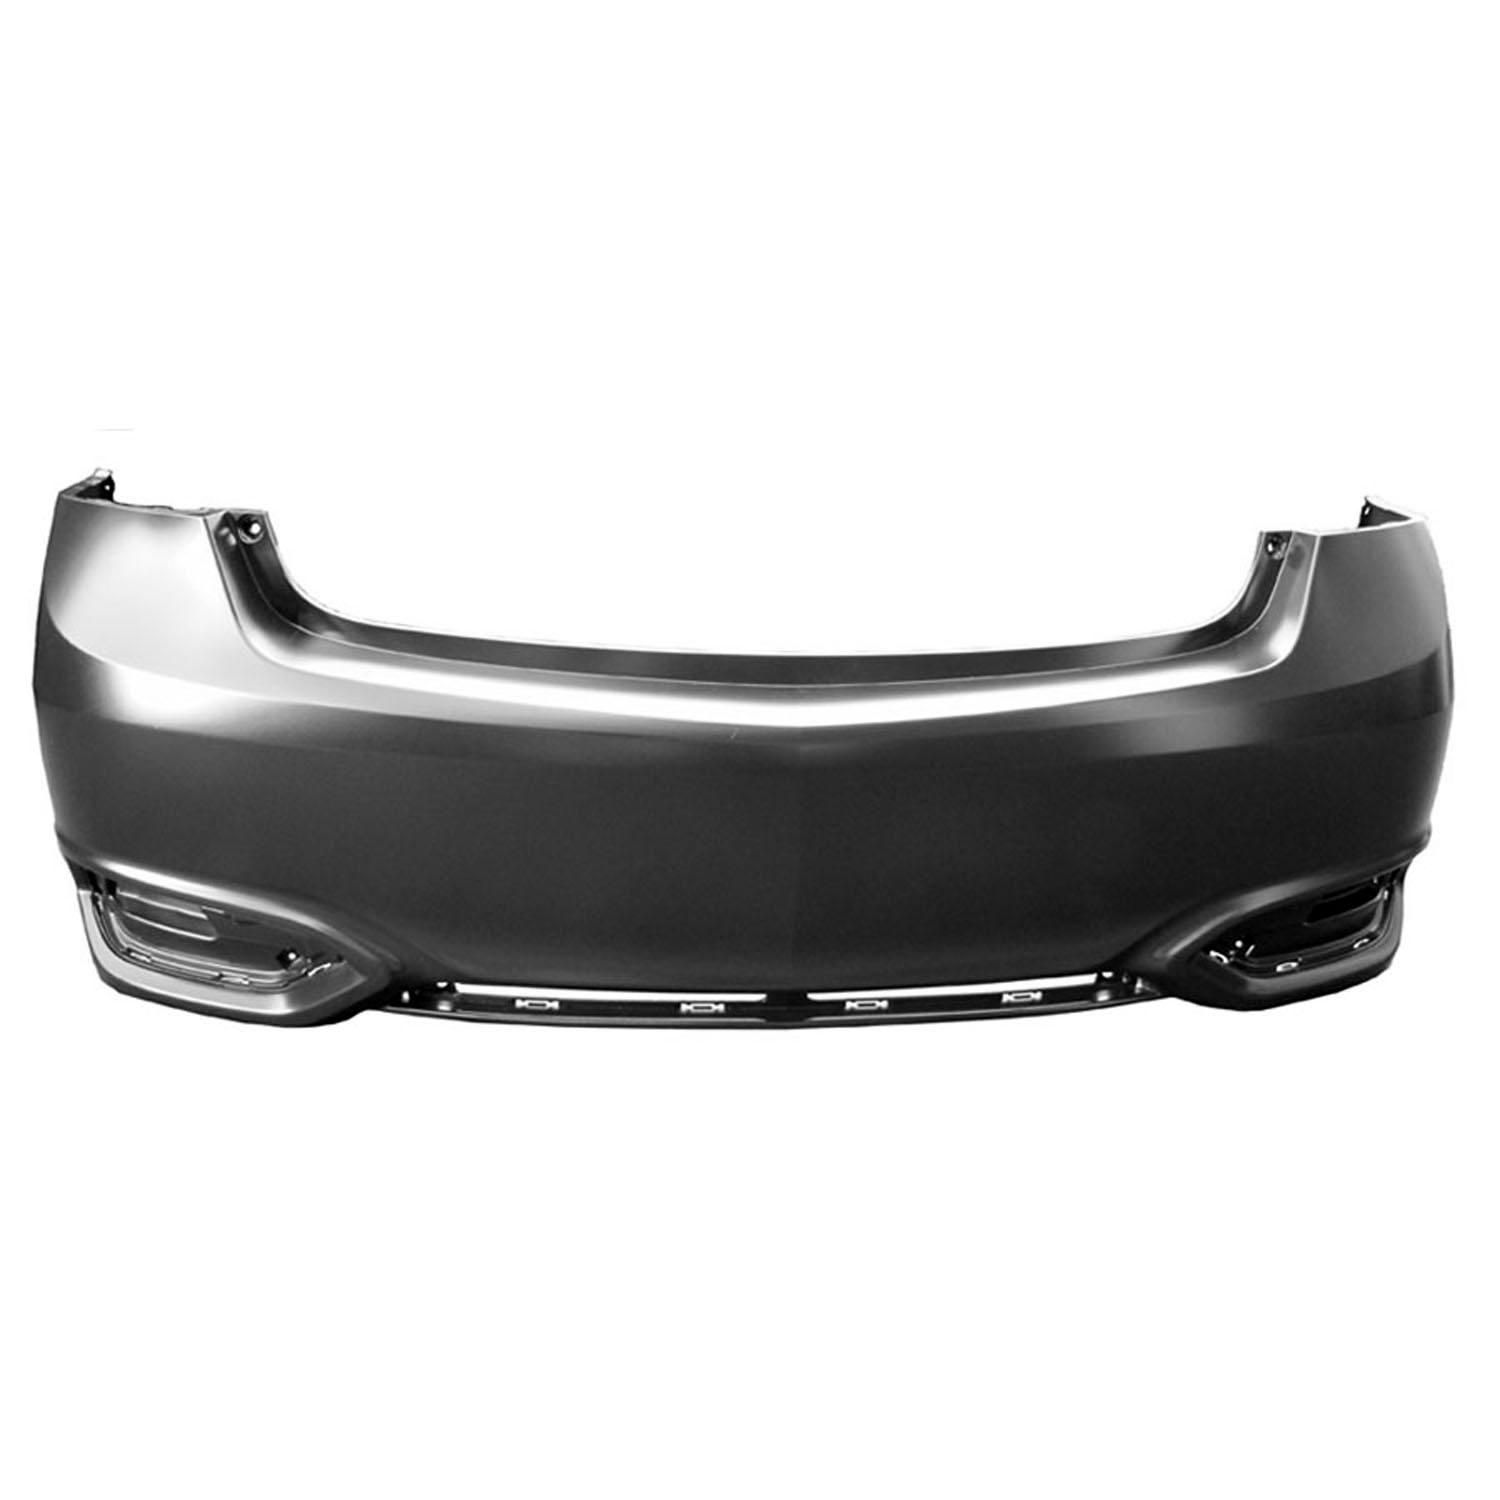 Fits 2016-2018 Acura ILX Rear Bumper Cover 187-01729 NSF